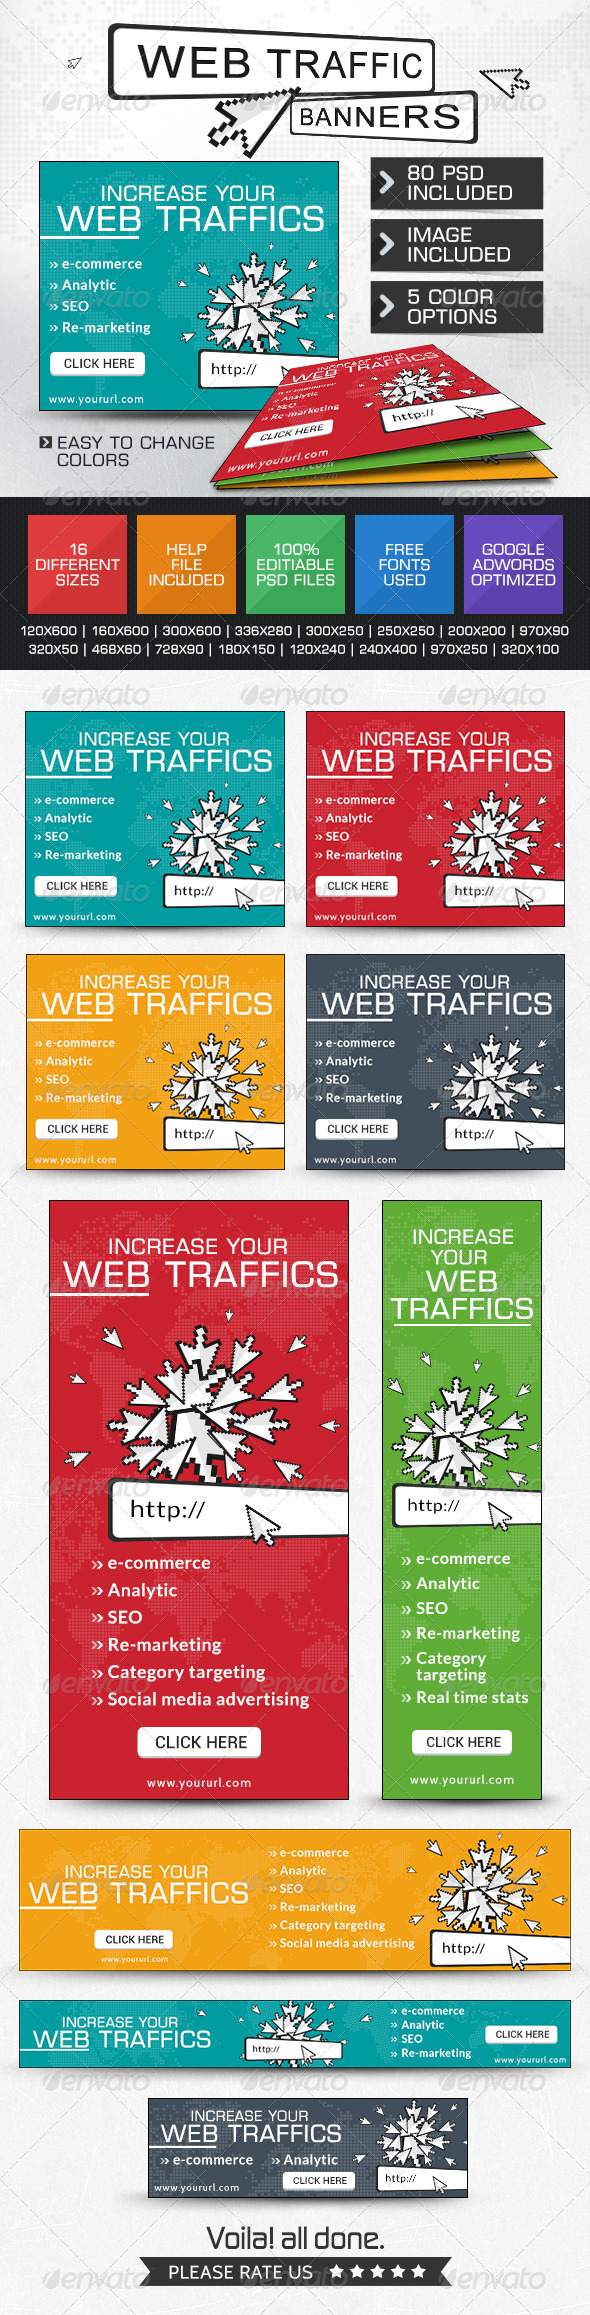 GraphicRiver Web Traffic Banners 5 Colours 7556186